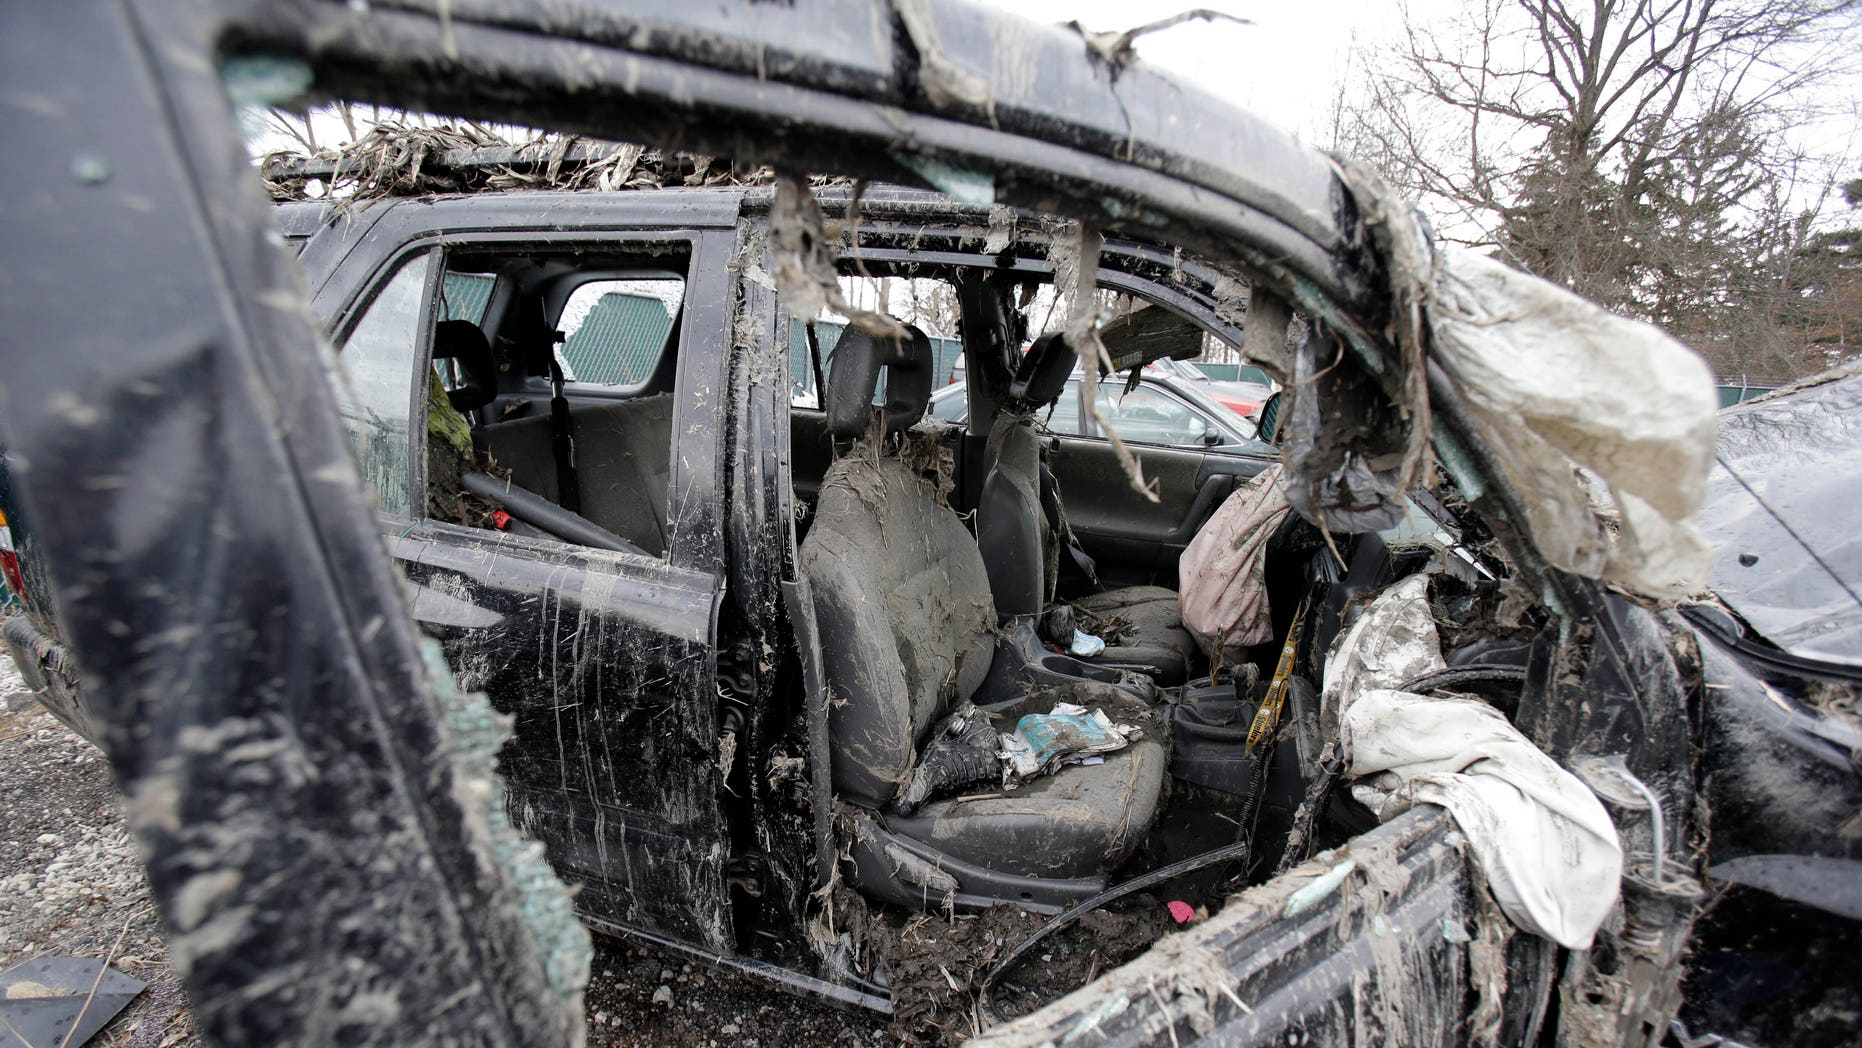 March 11, 2013: Photo in Southington, Ohio shows the vehicle where six people died in a crash early Sunday in Warren, Ohio. Two teens who escaped the crash that killed six friends in a swampy pond wriggled out of the wreckage by smashing a rear window and swimming away from the SUV, a state trooper said Monday.